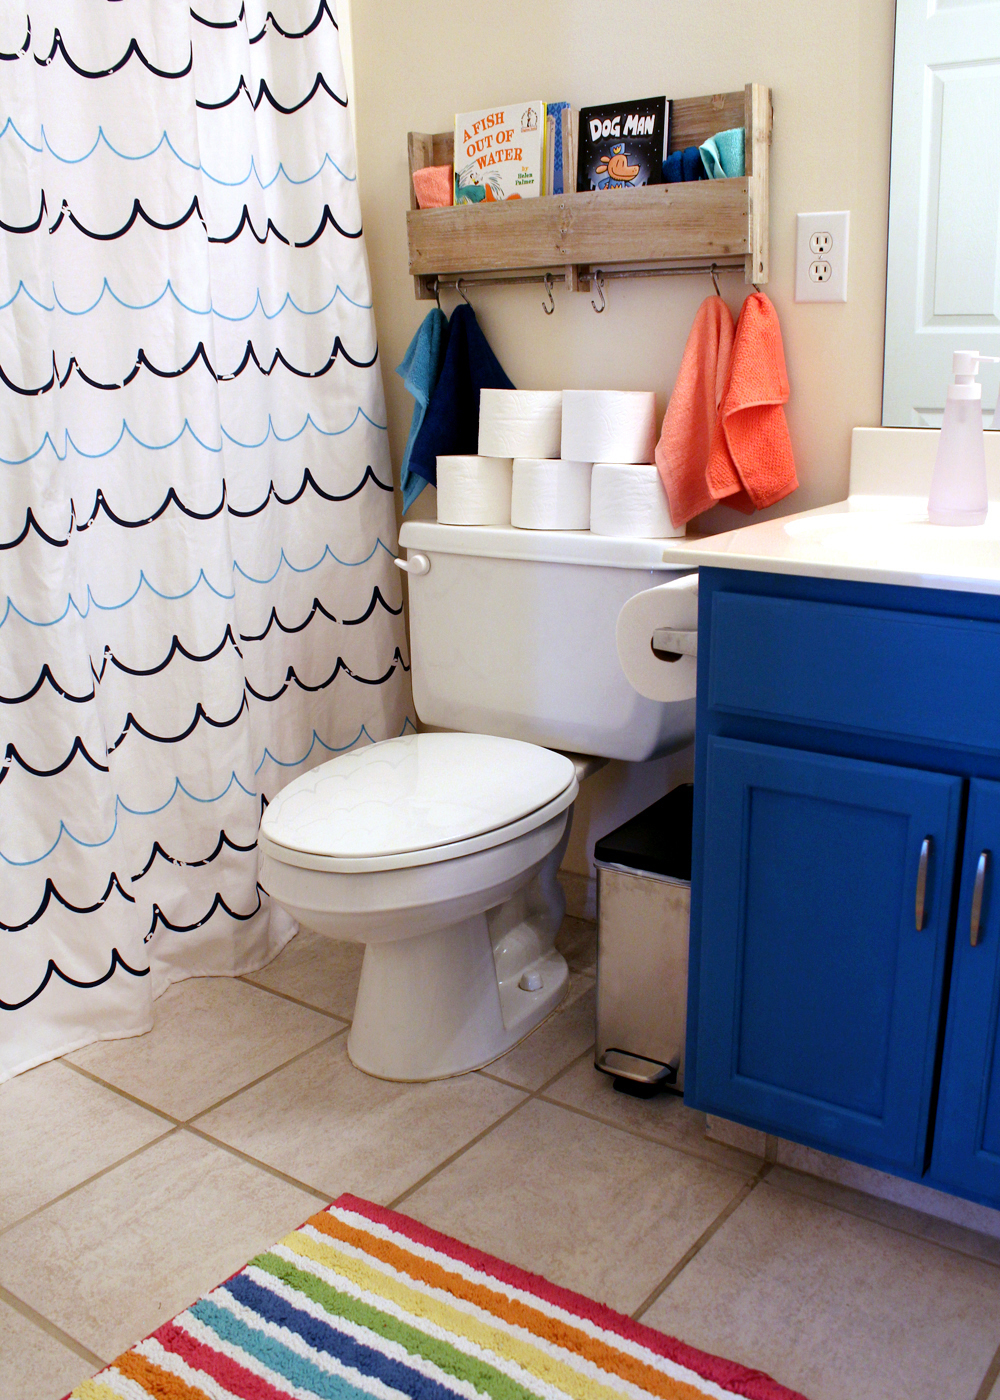 4 Ways to Give Your Bathroom a Refresh